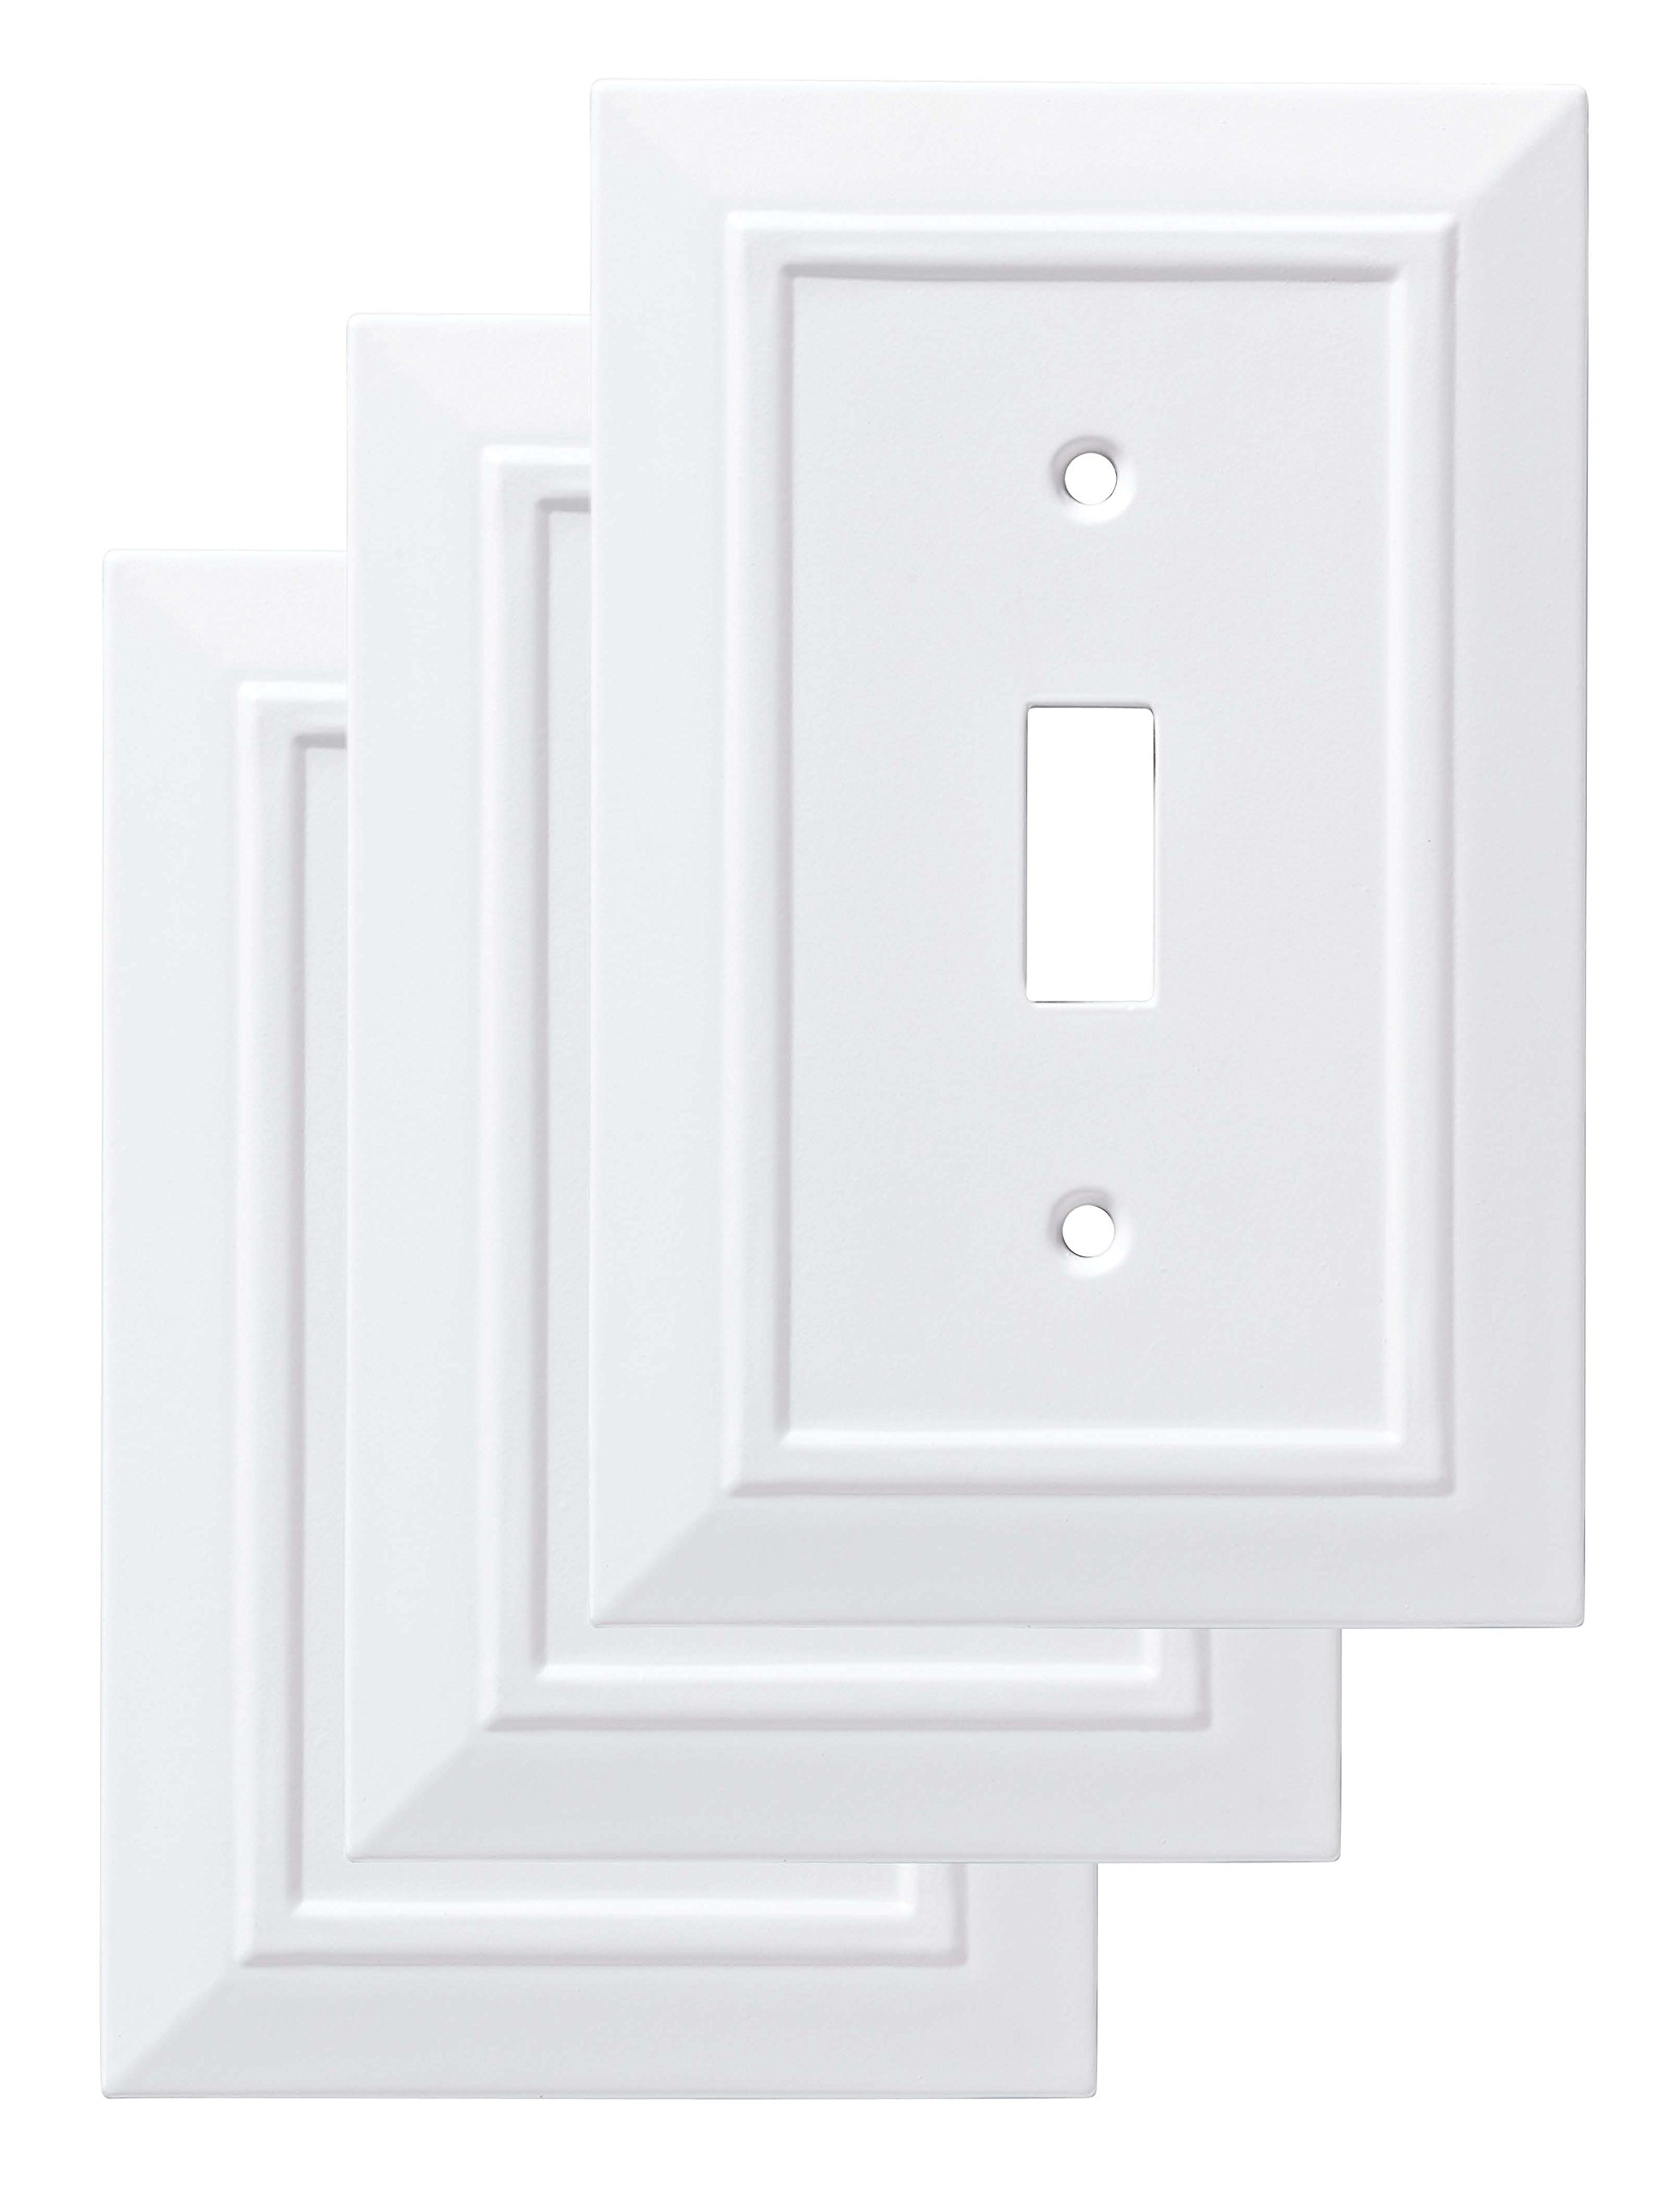 Franklin Brass W35241V-PW-C Classic Architecture Single Switch Wall Plate/Switch Plate/Cover, White, 3-Pack by Franklin Brass